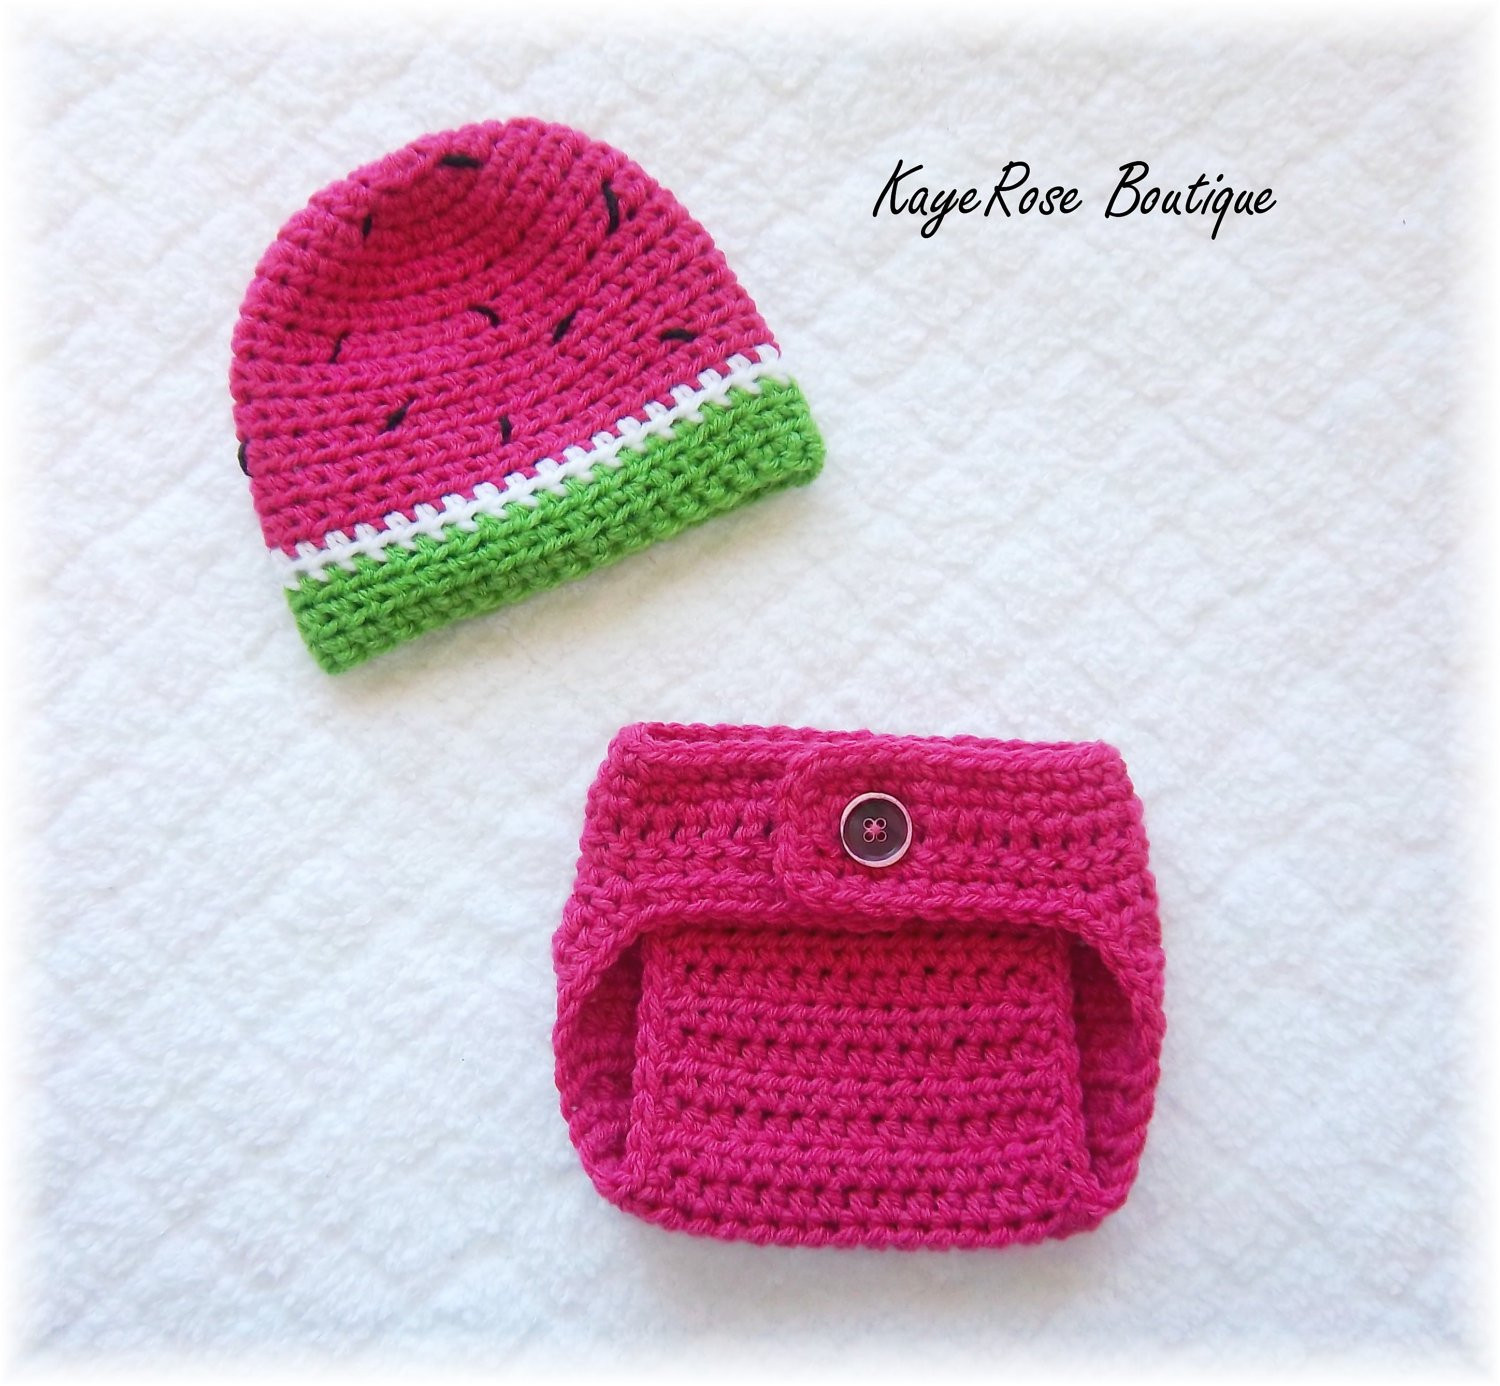 Crochet Baby Diaper Cover and Hat Elegant Newborn Baby Crochet Watermelon Hat & Diaper Cover by Of Perfect 50 Photos Crochet Baby Diaper Cover and Hat